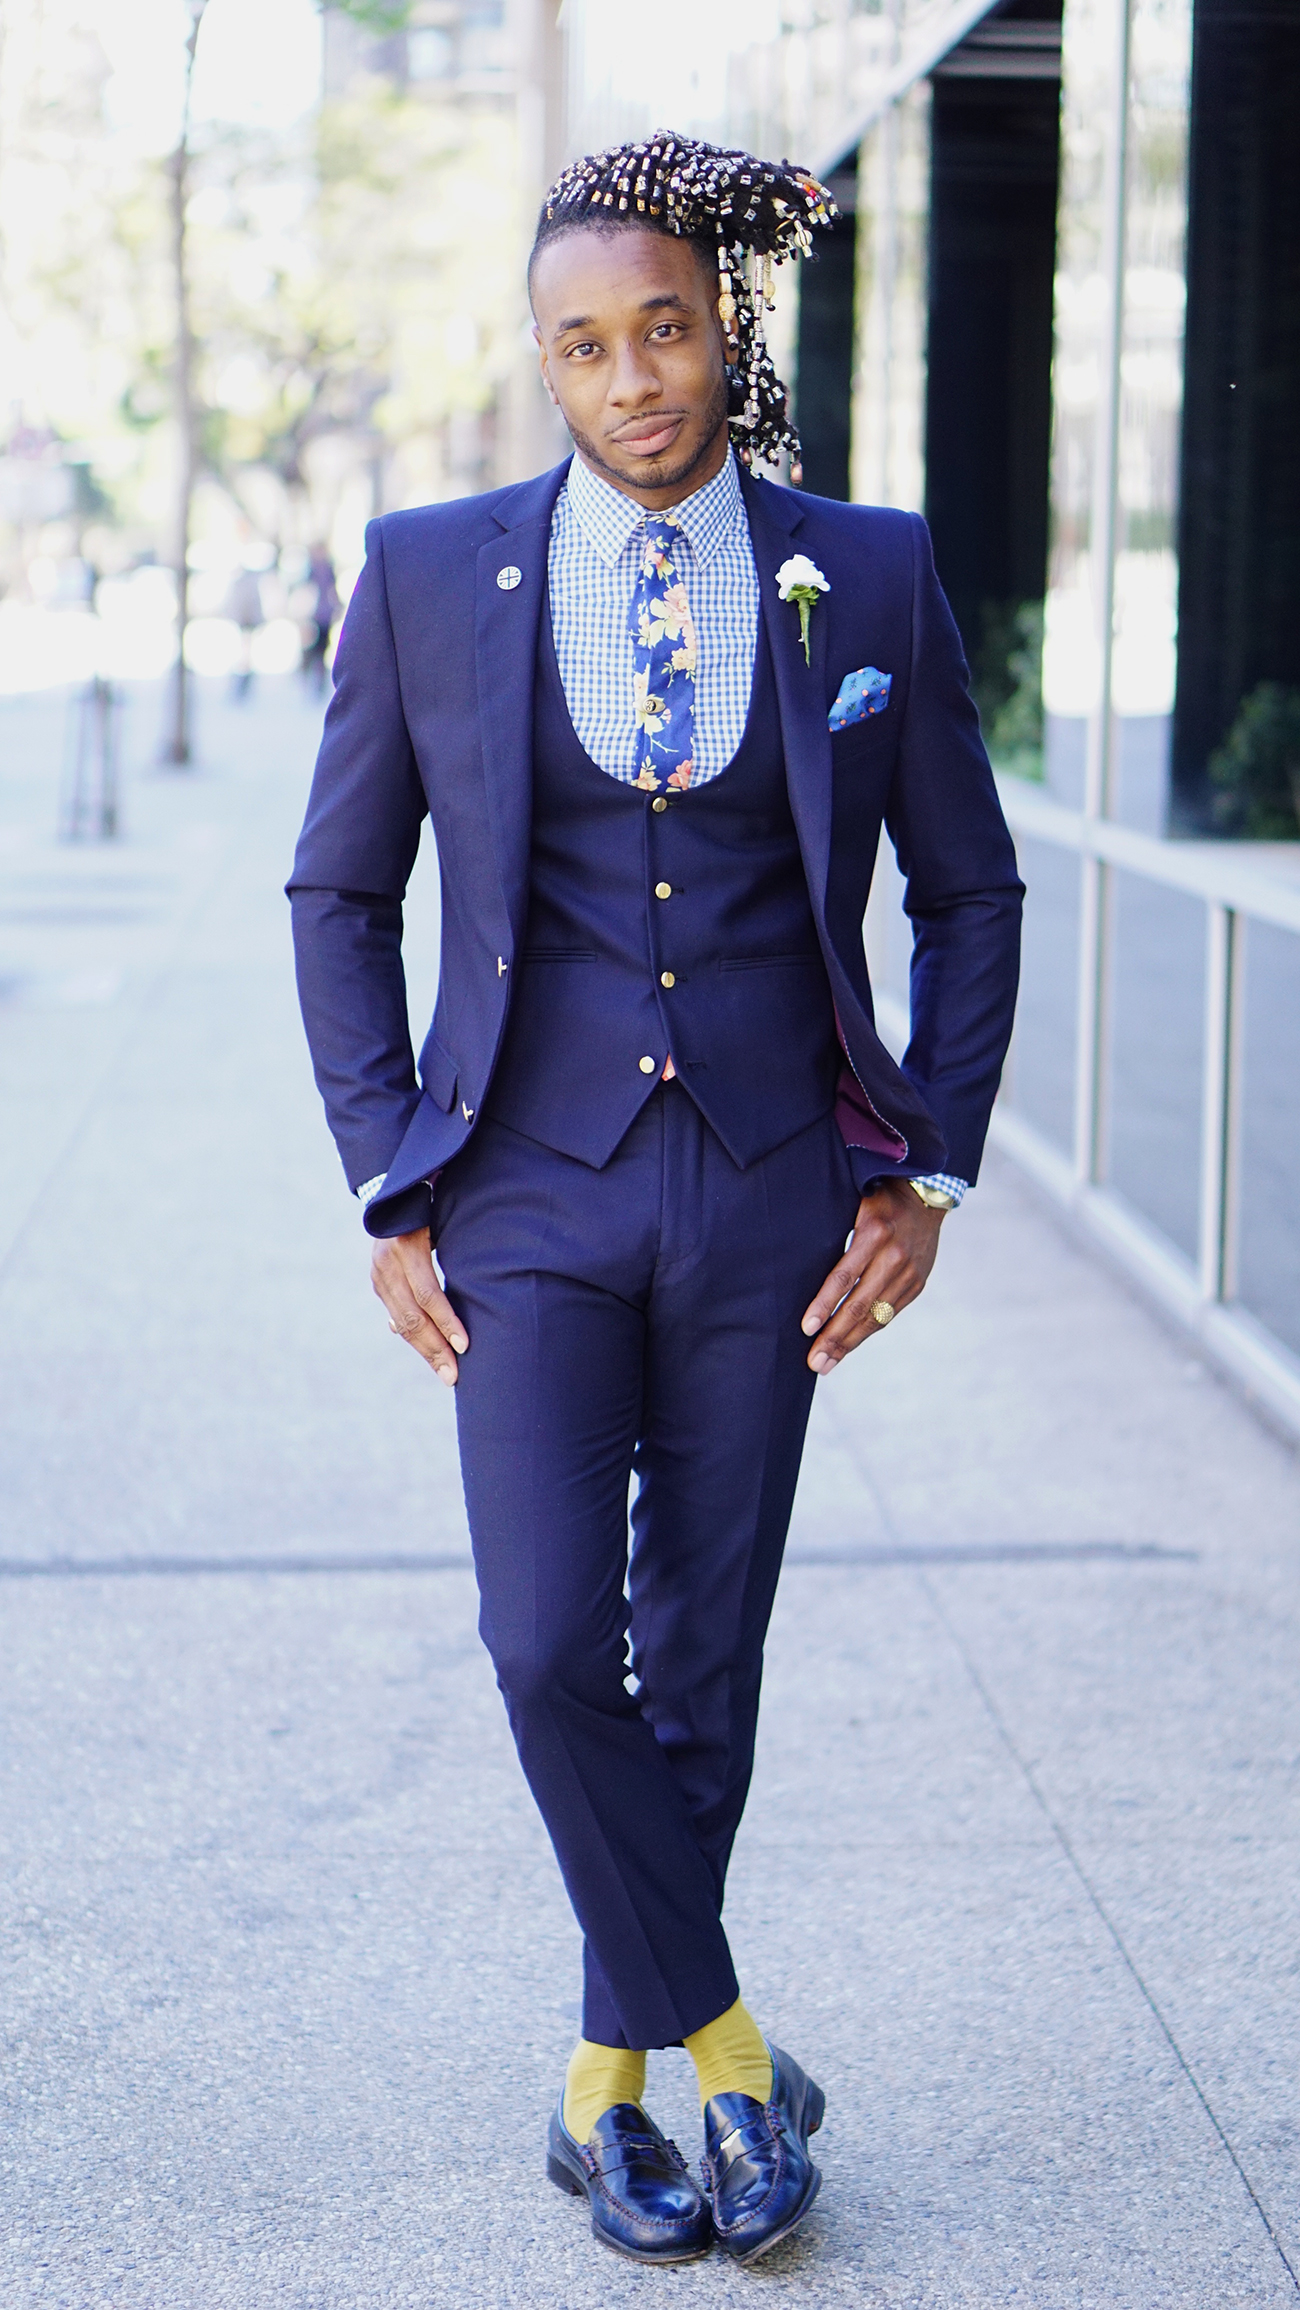 OOTD: NEW 3 PIECE NAVY SUIT – Norris Danta Ford